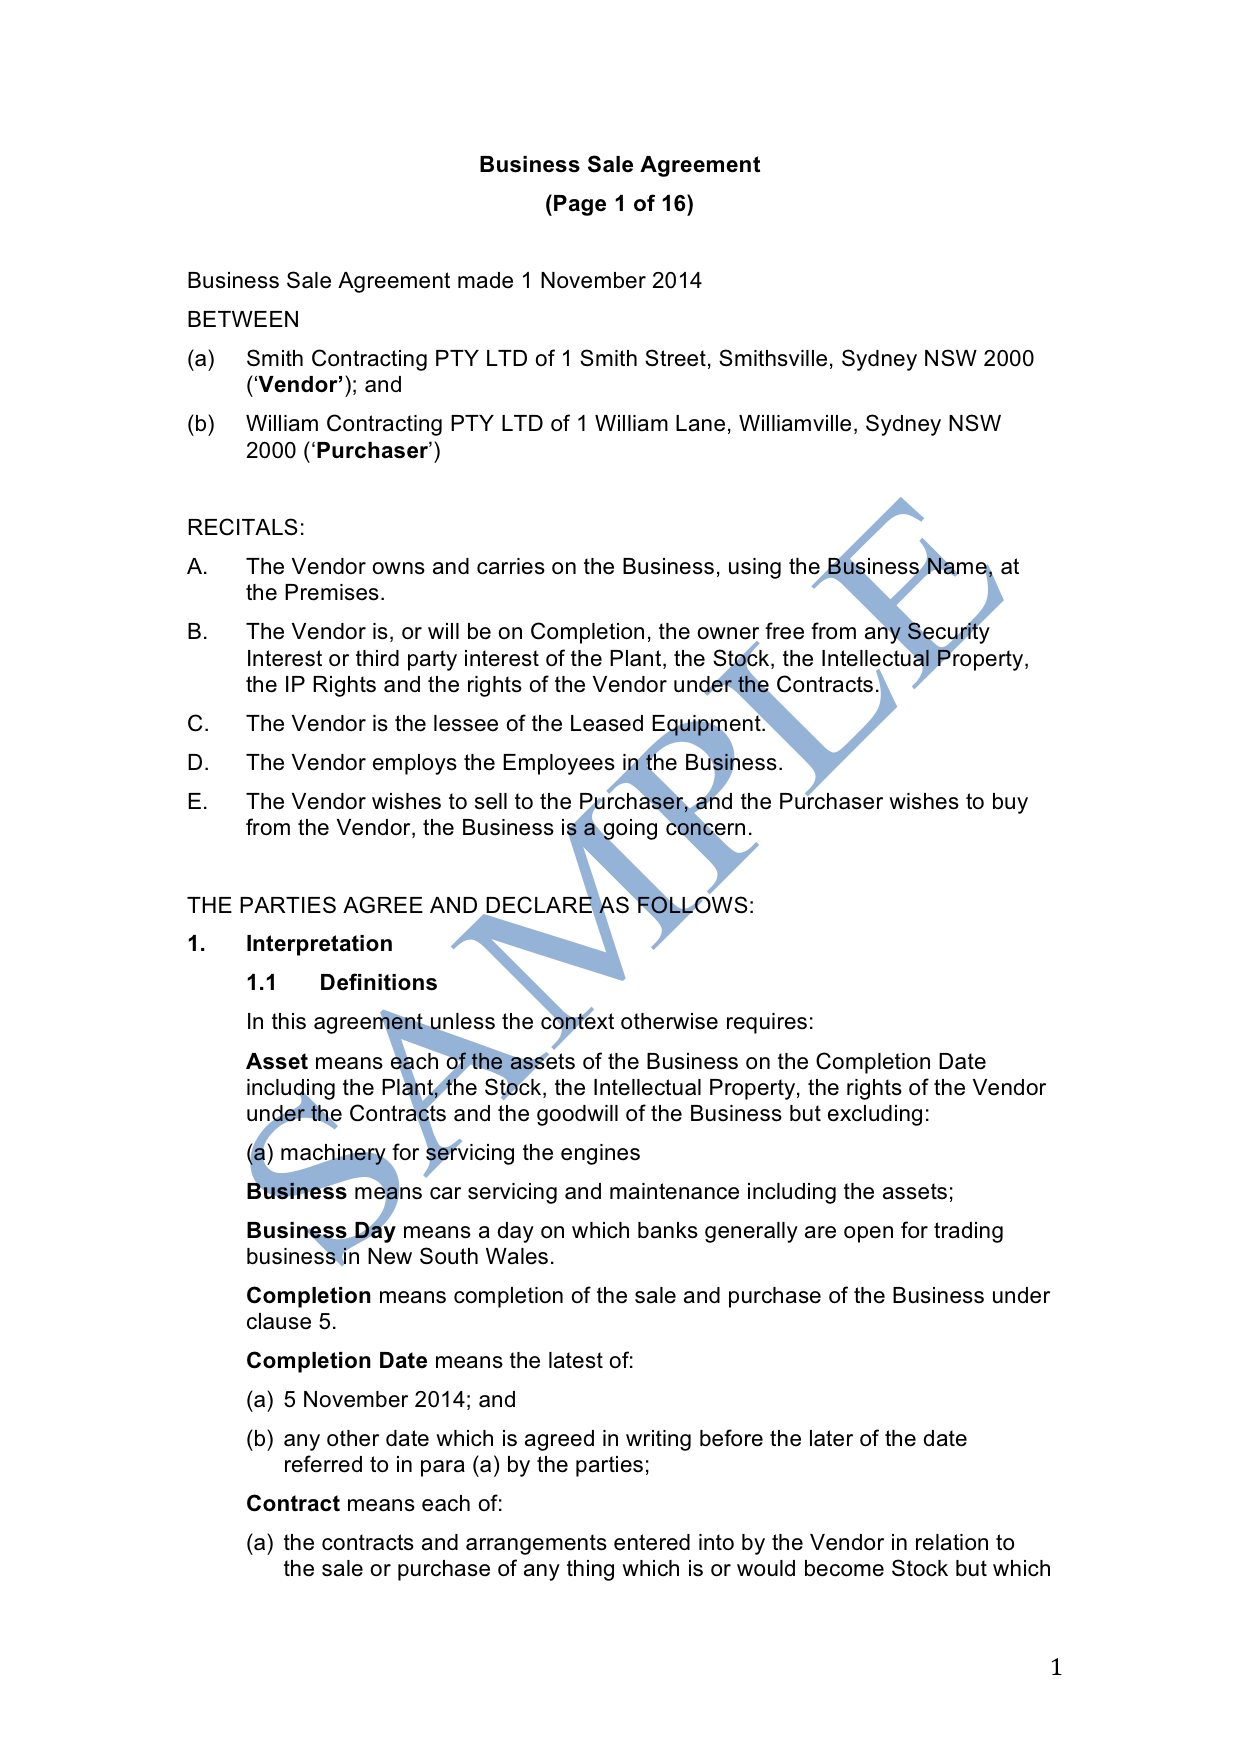 Business Sale Agreement